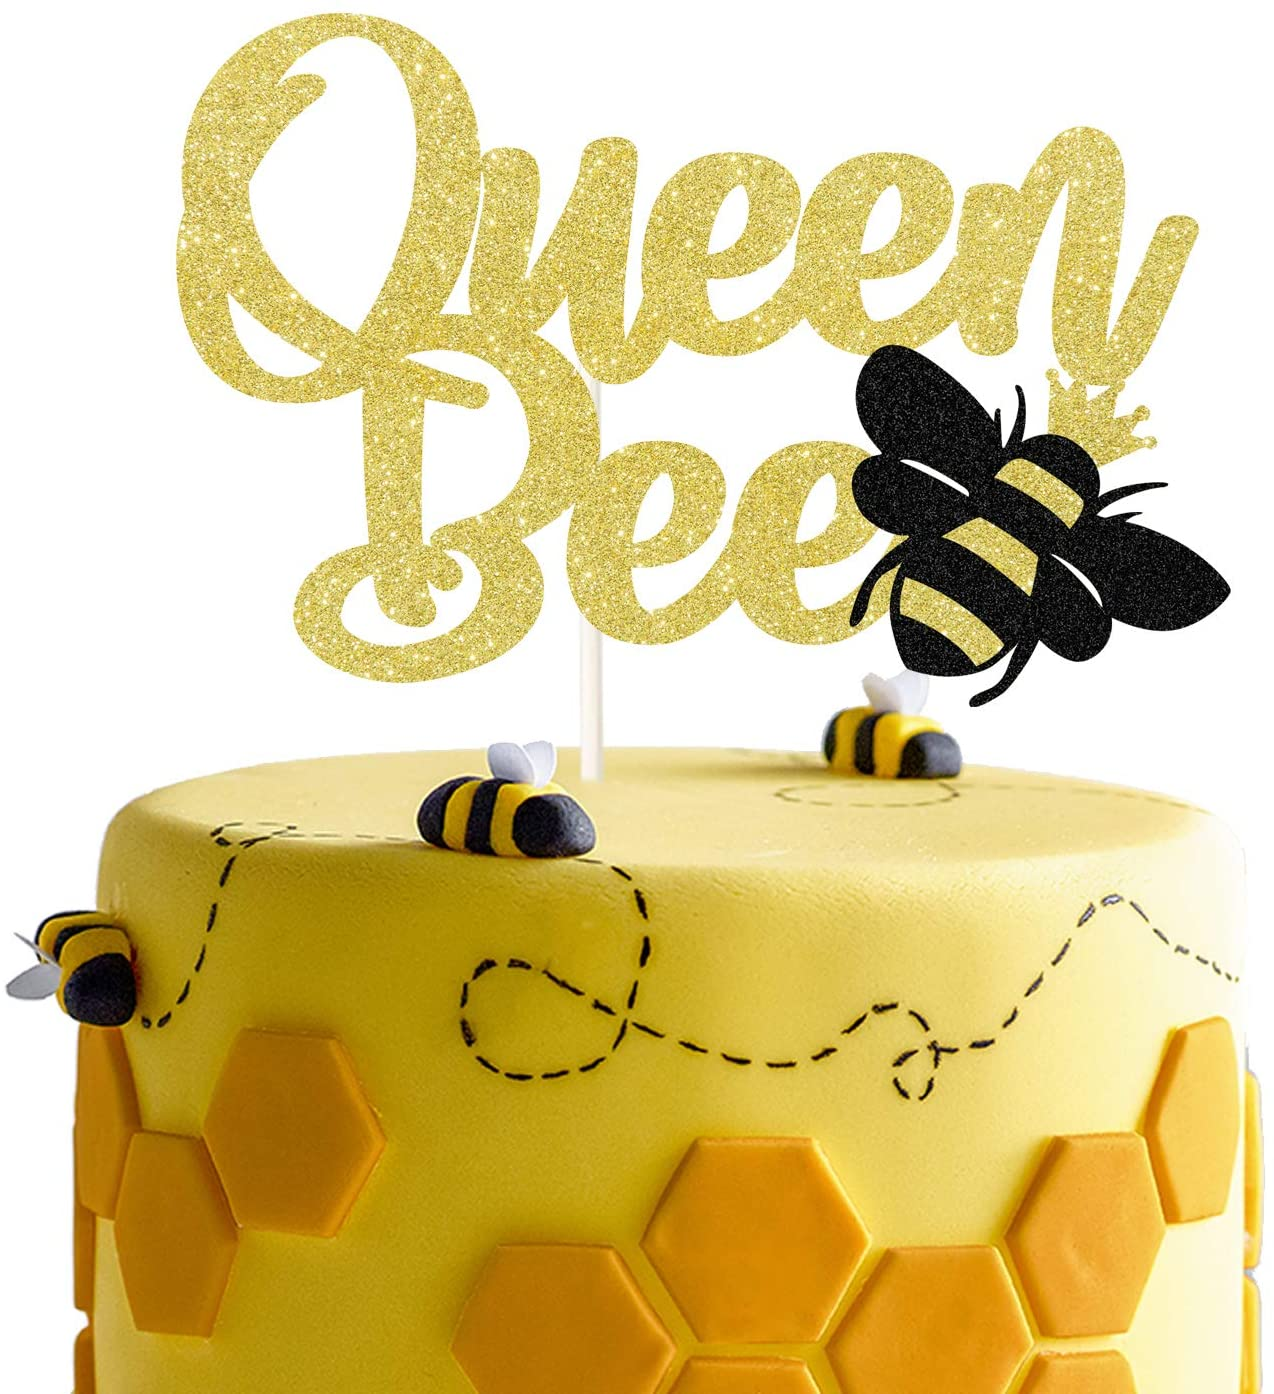 Gold Glitter Queen Bee Colorado Springs Mall Cake San Francisco Mall Topper Happy Themed Bumble Birt